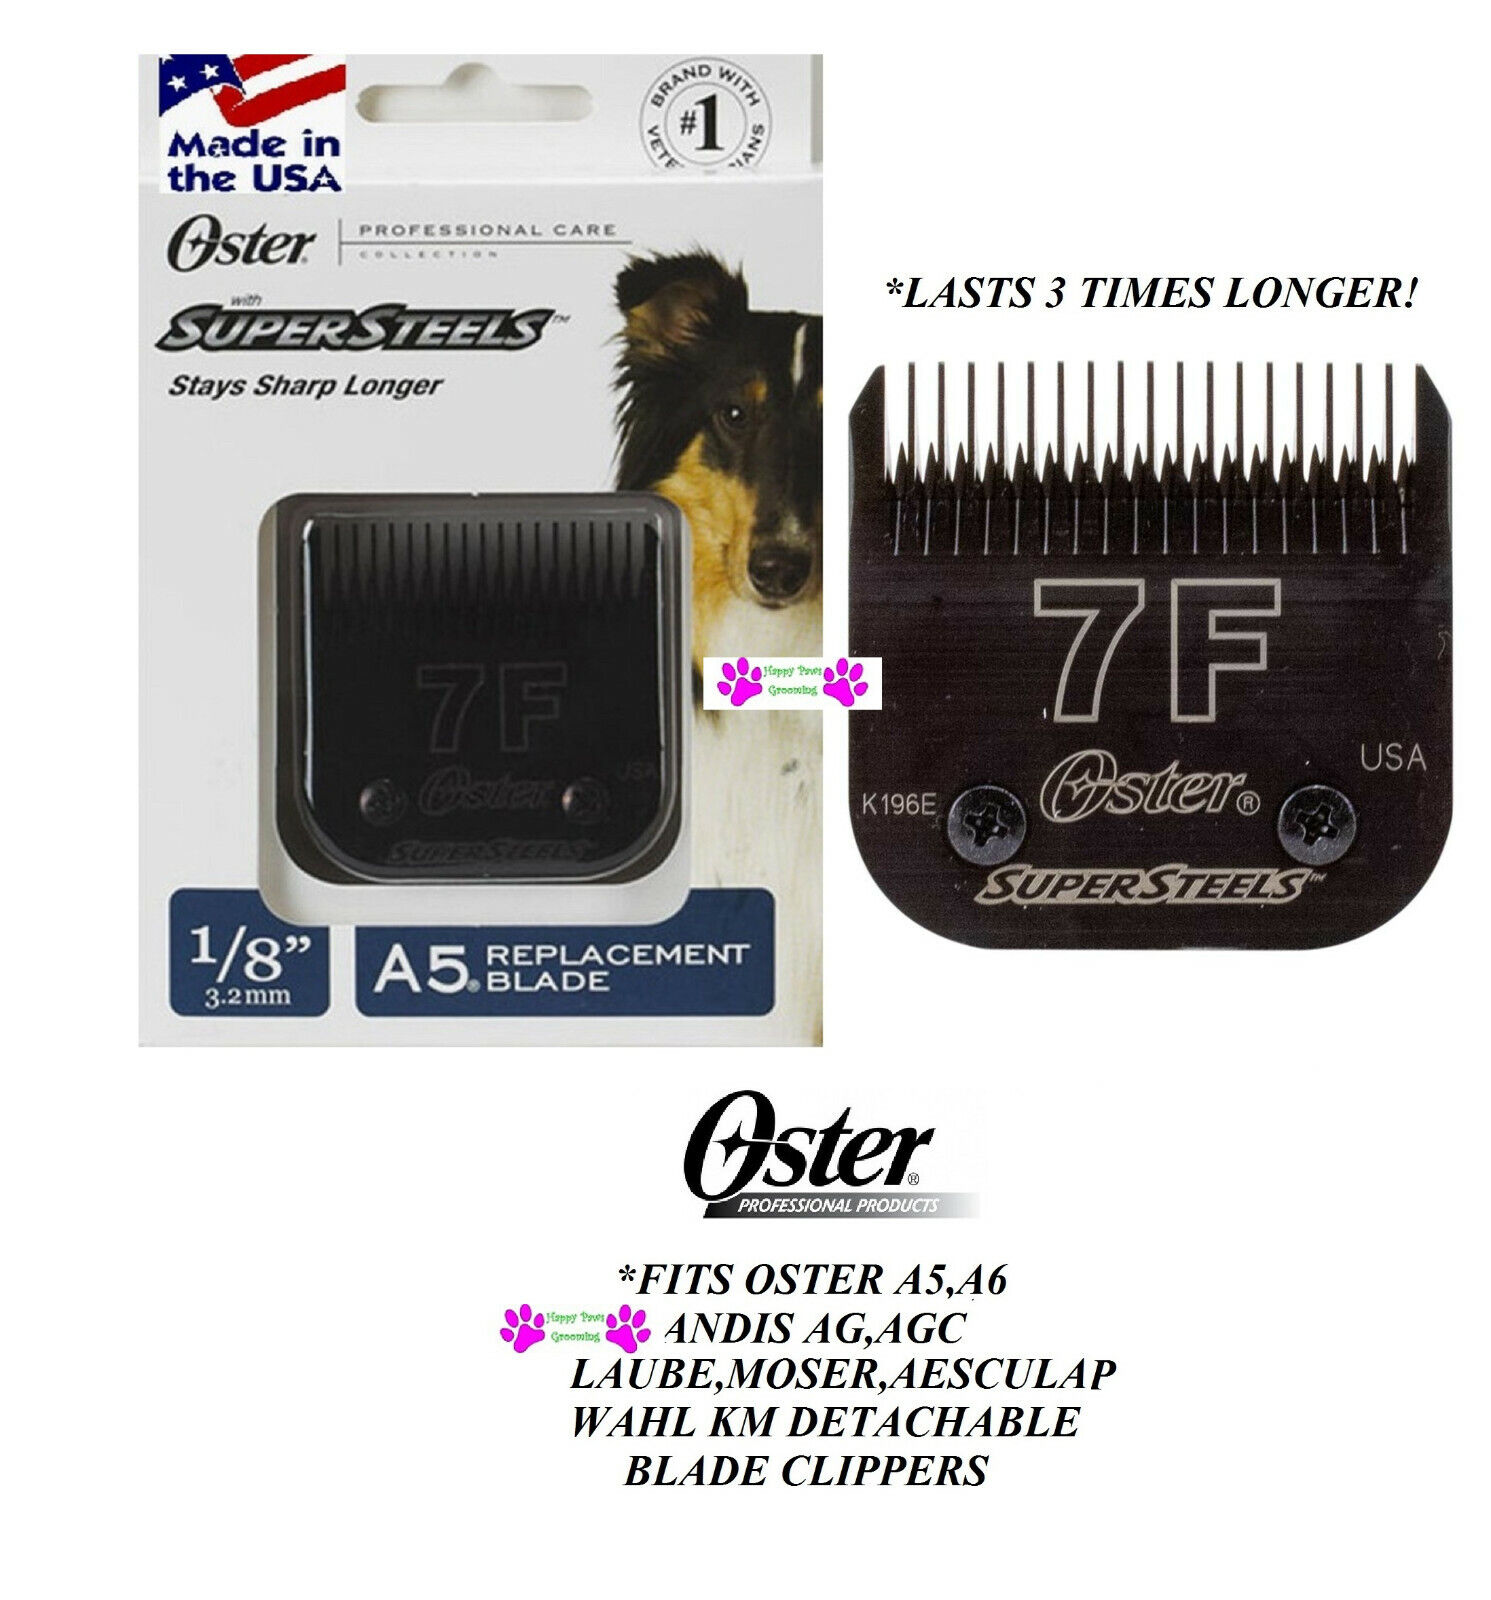 2-OSTER SUPERSTEELS 1 8  3.2mm BLADE 7FC 7F FIT A5,A6,Andis AGC,Wahl KM Clipper